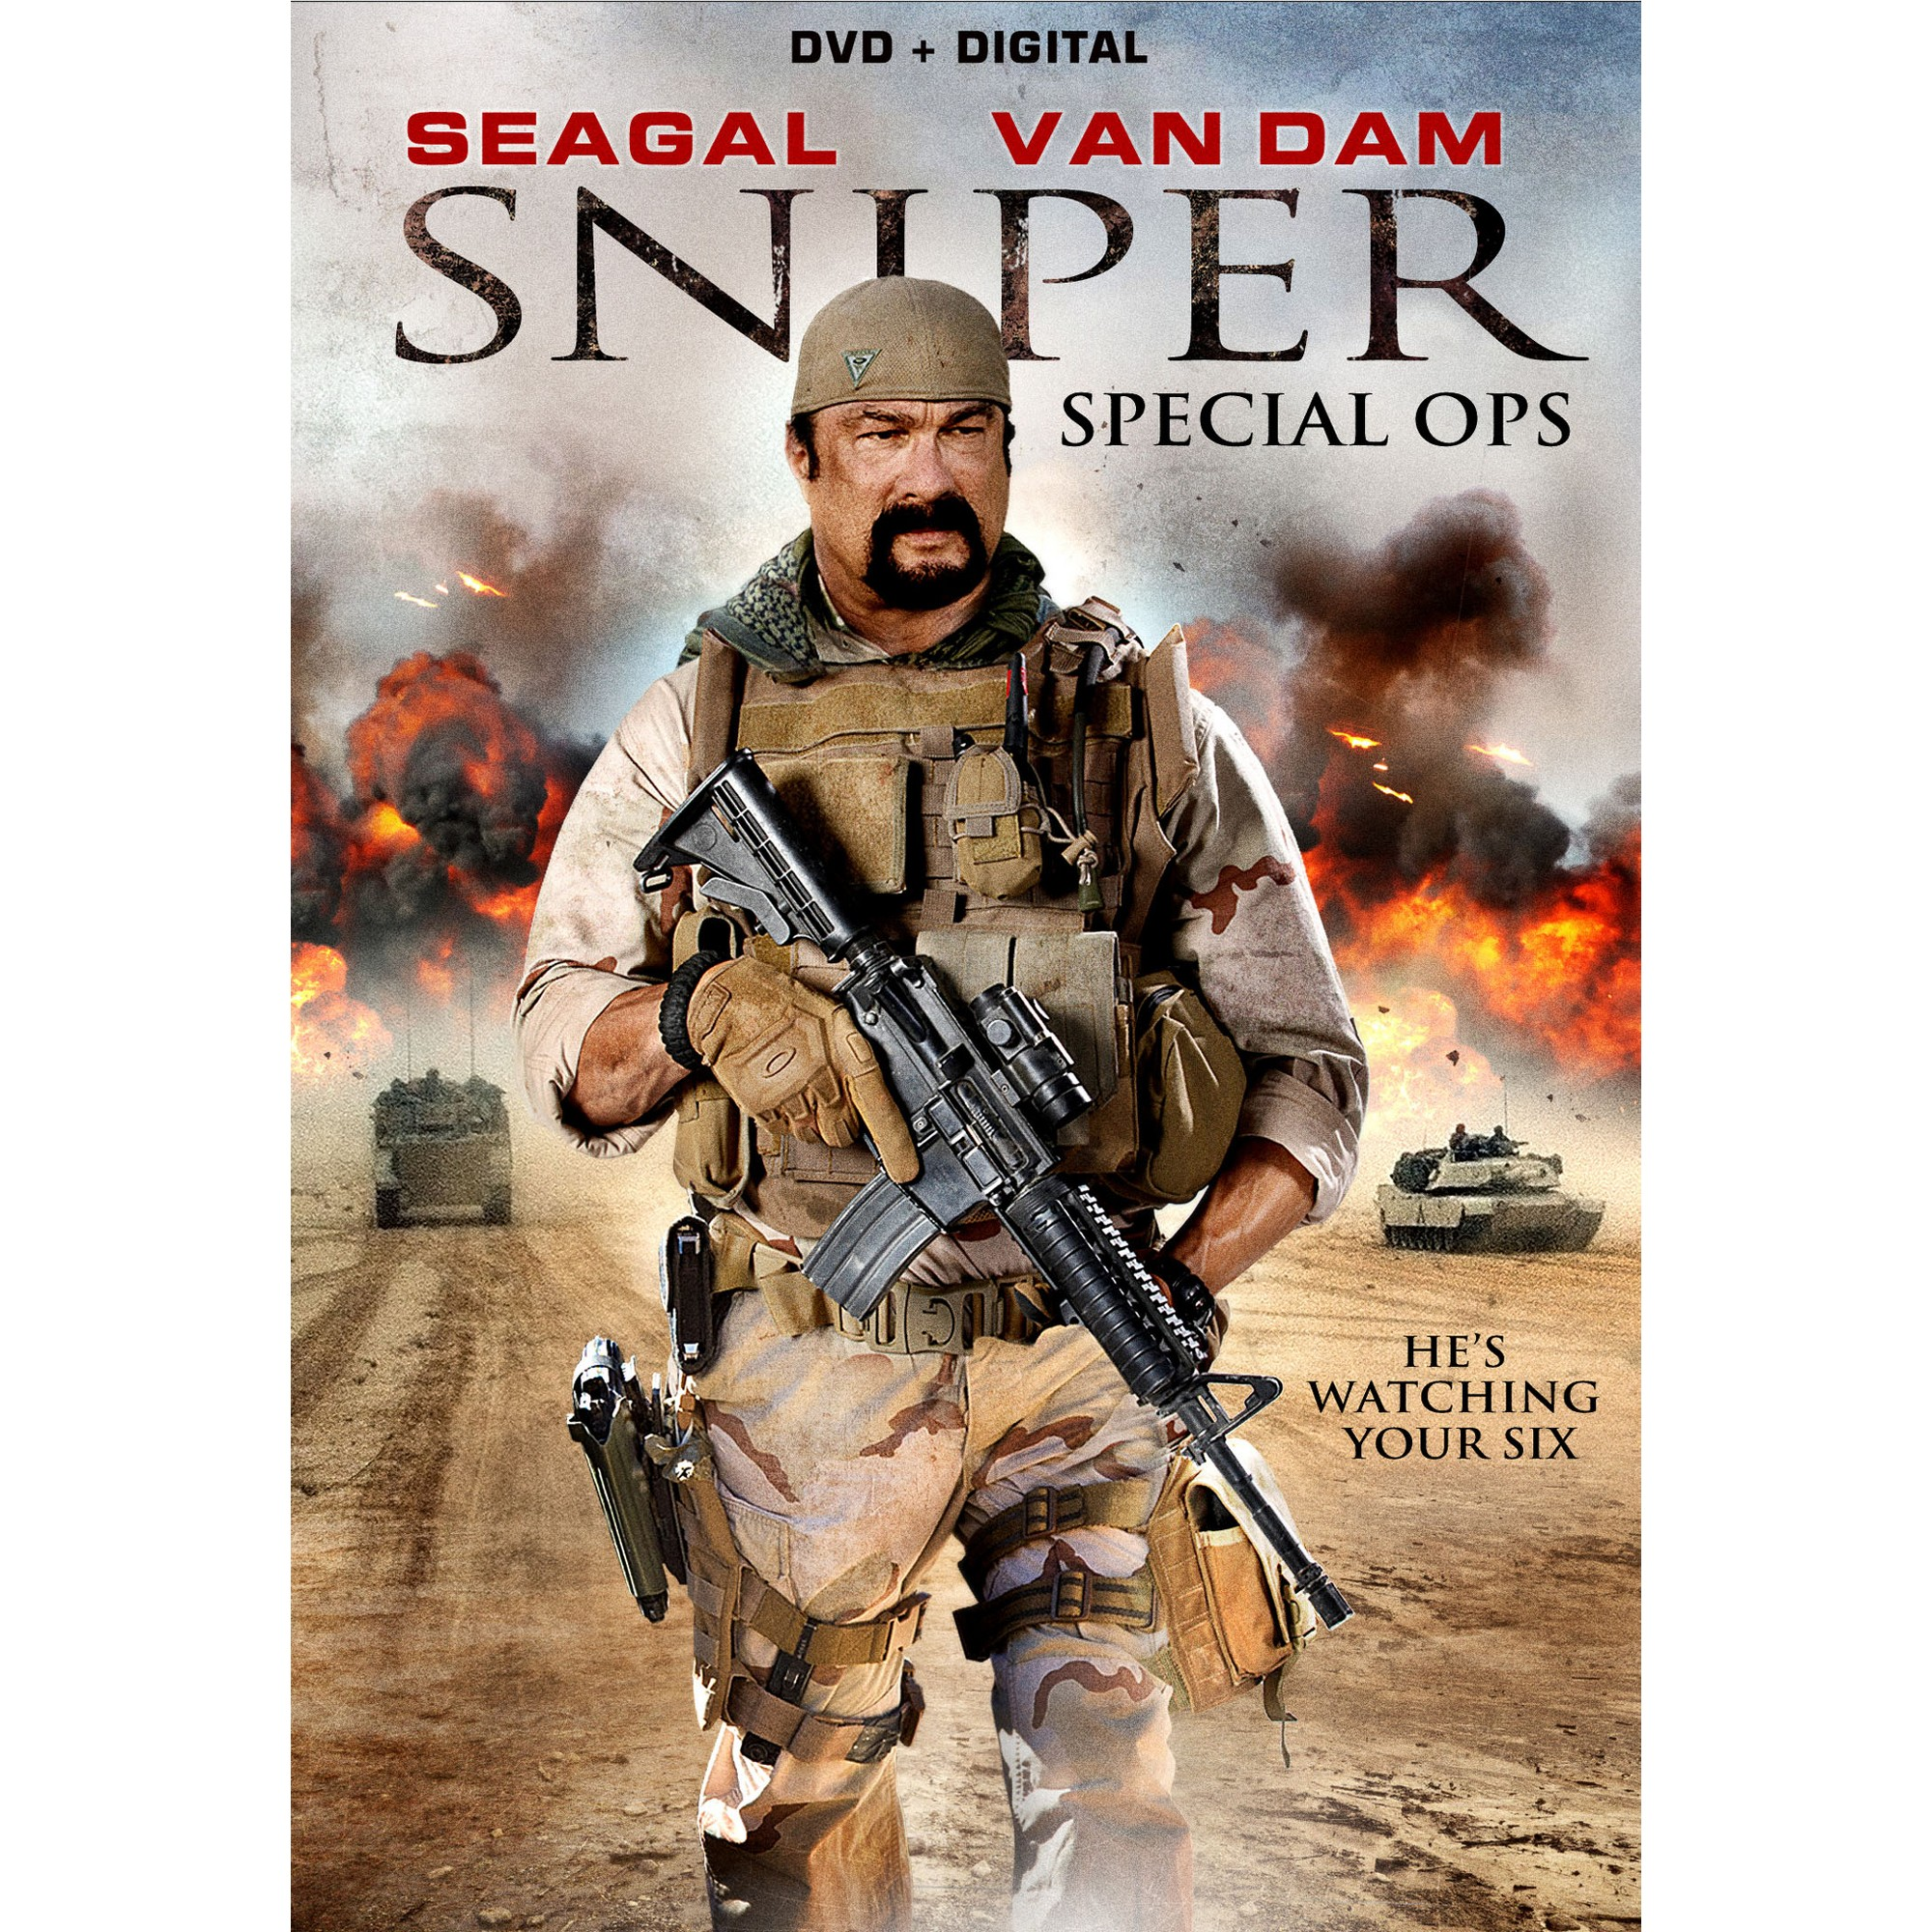 Sniper: Special Ops (DVD) | Products in 2019 | Special ops